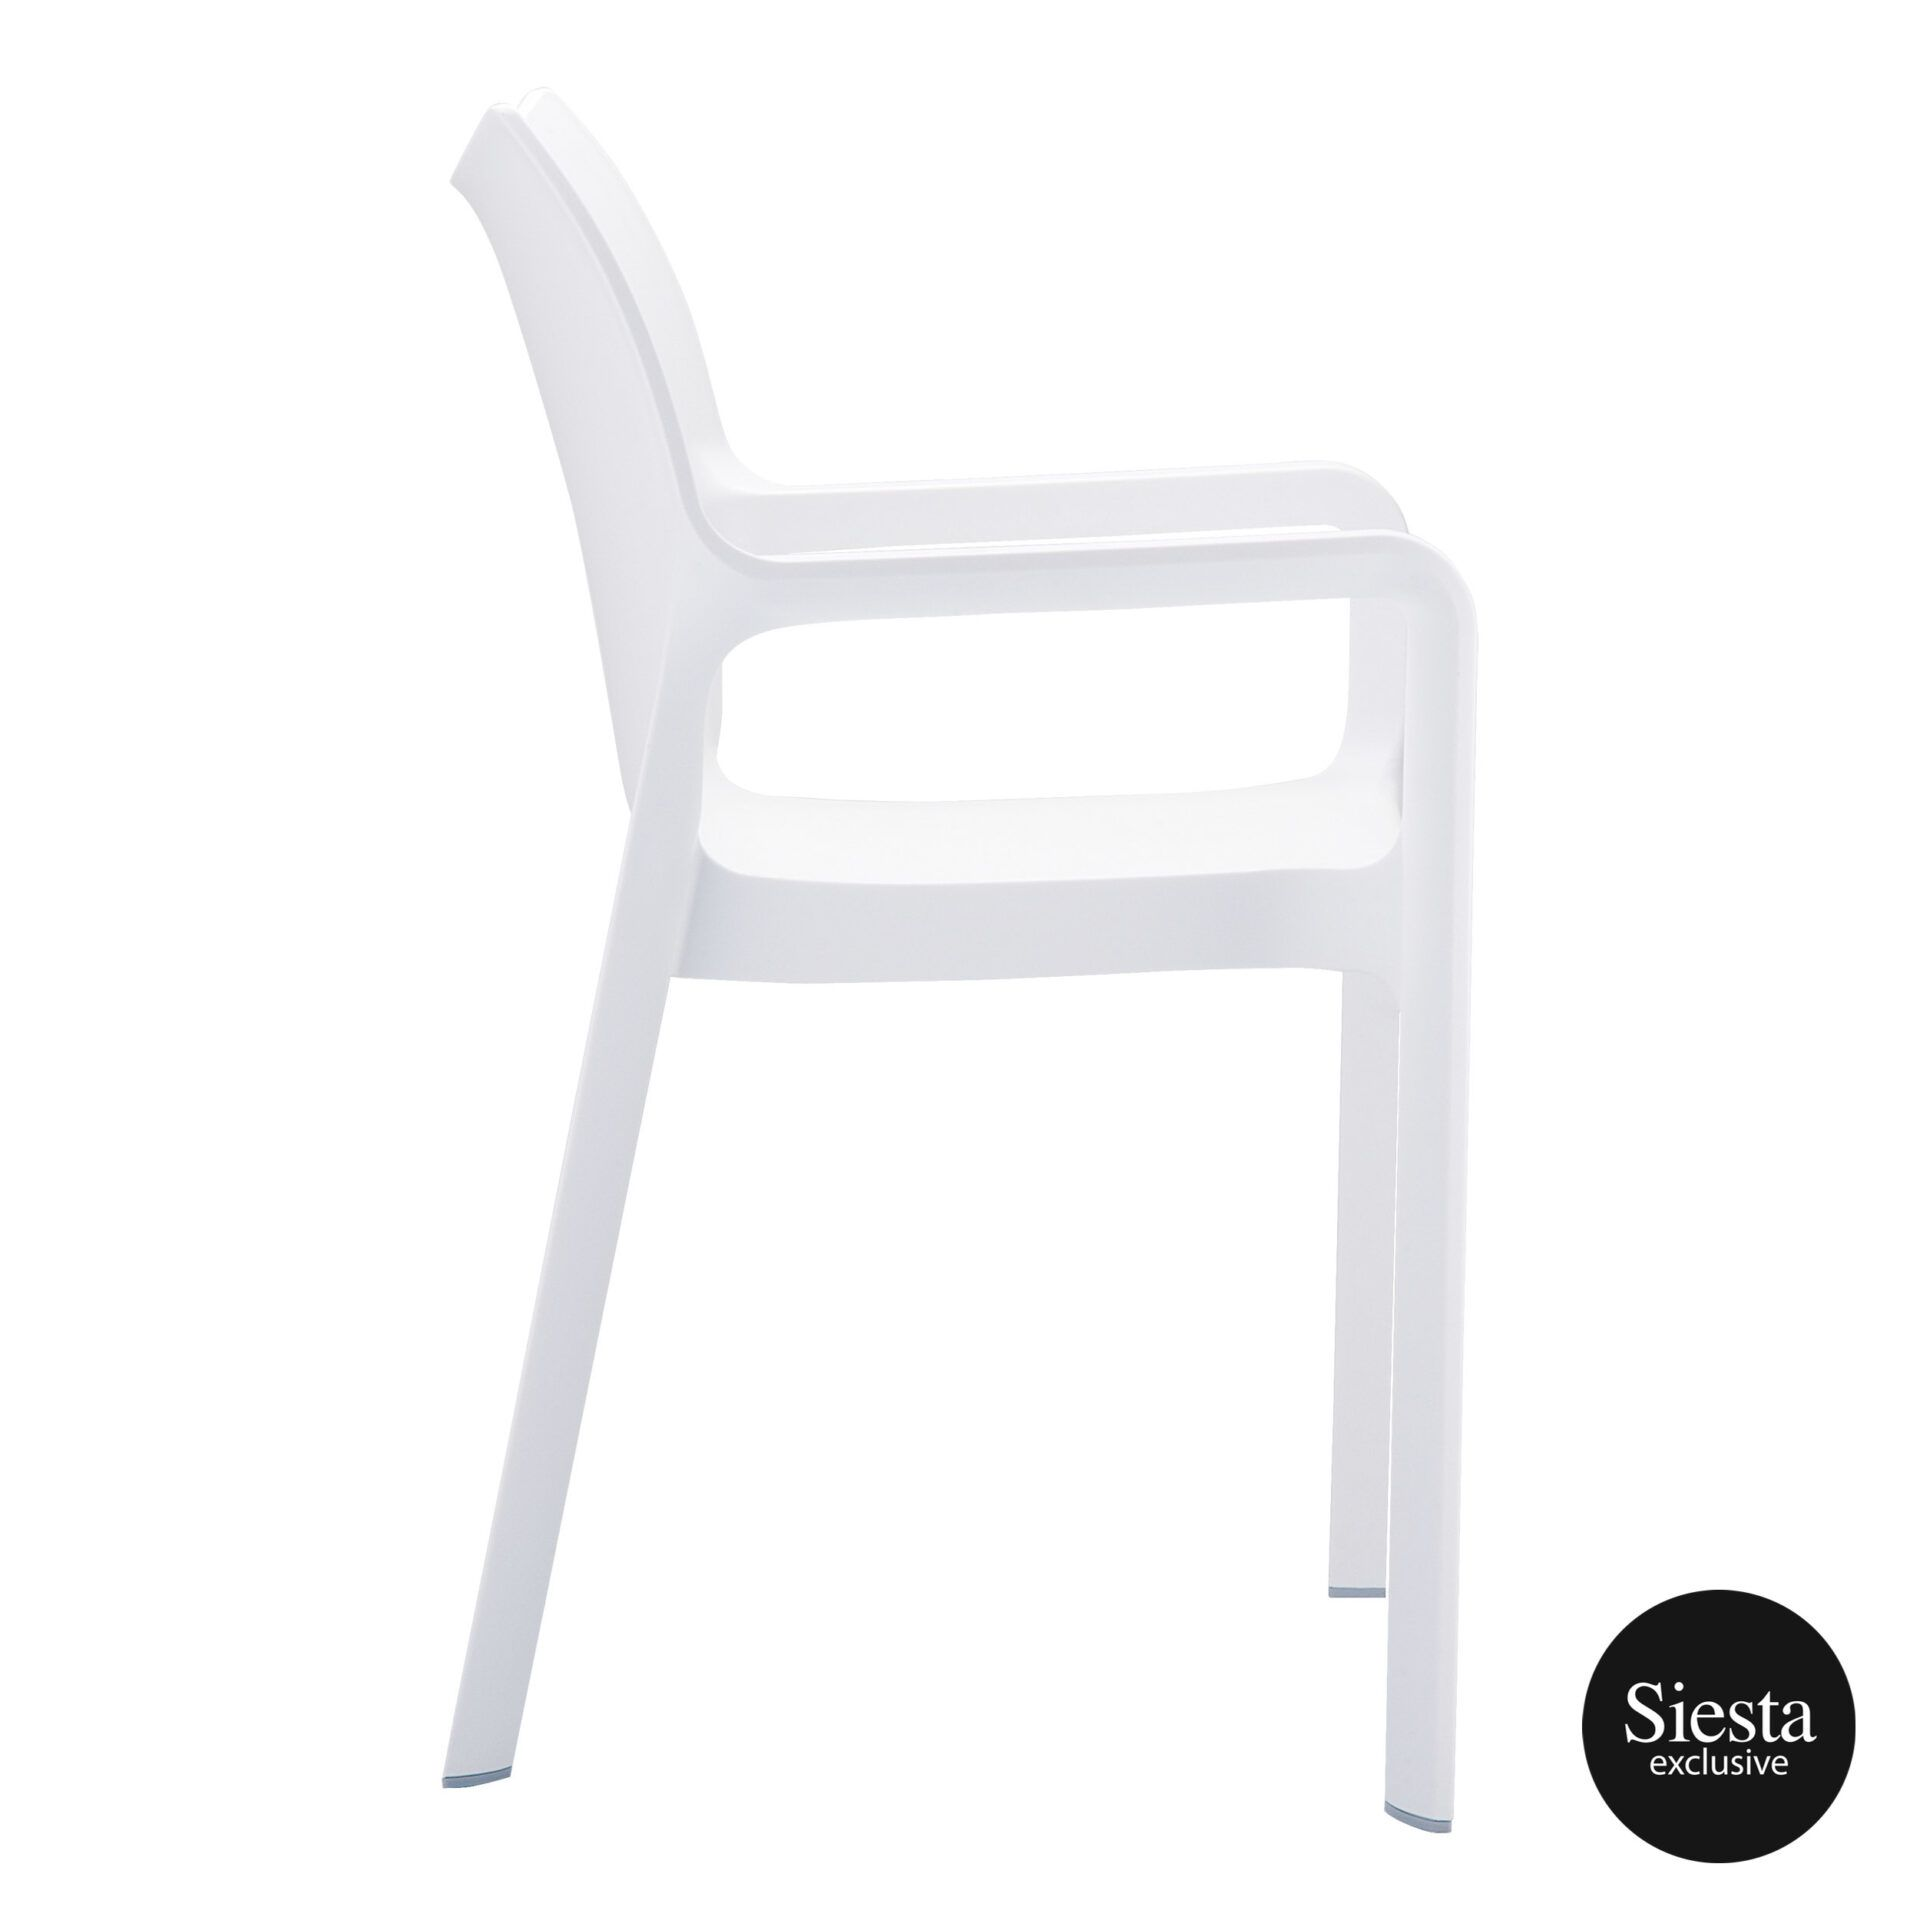 outdoor plastic seating diva chair white side 1